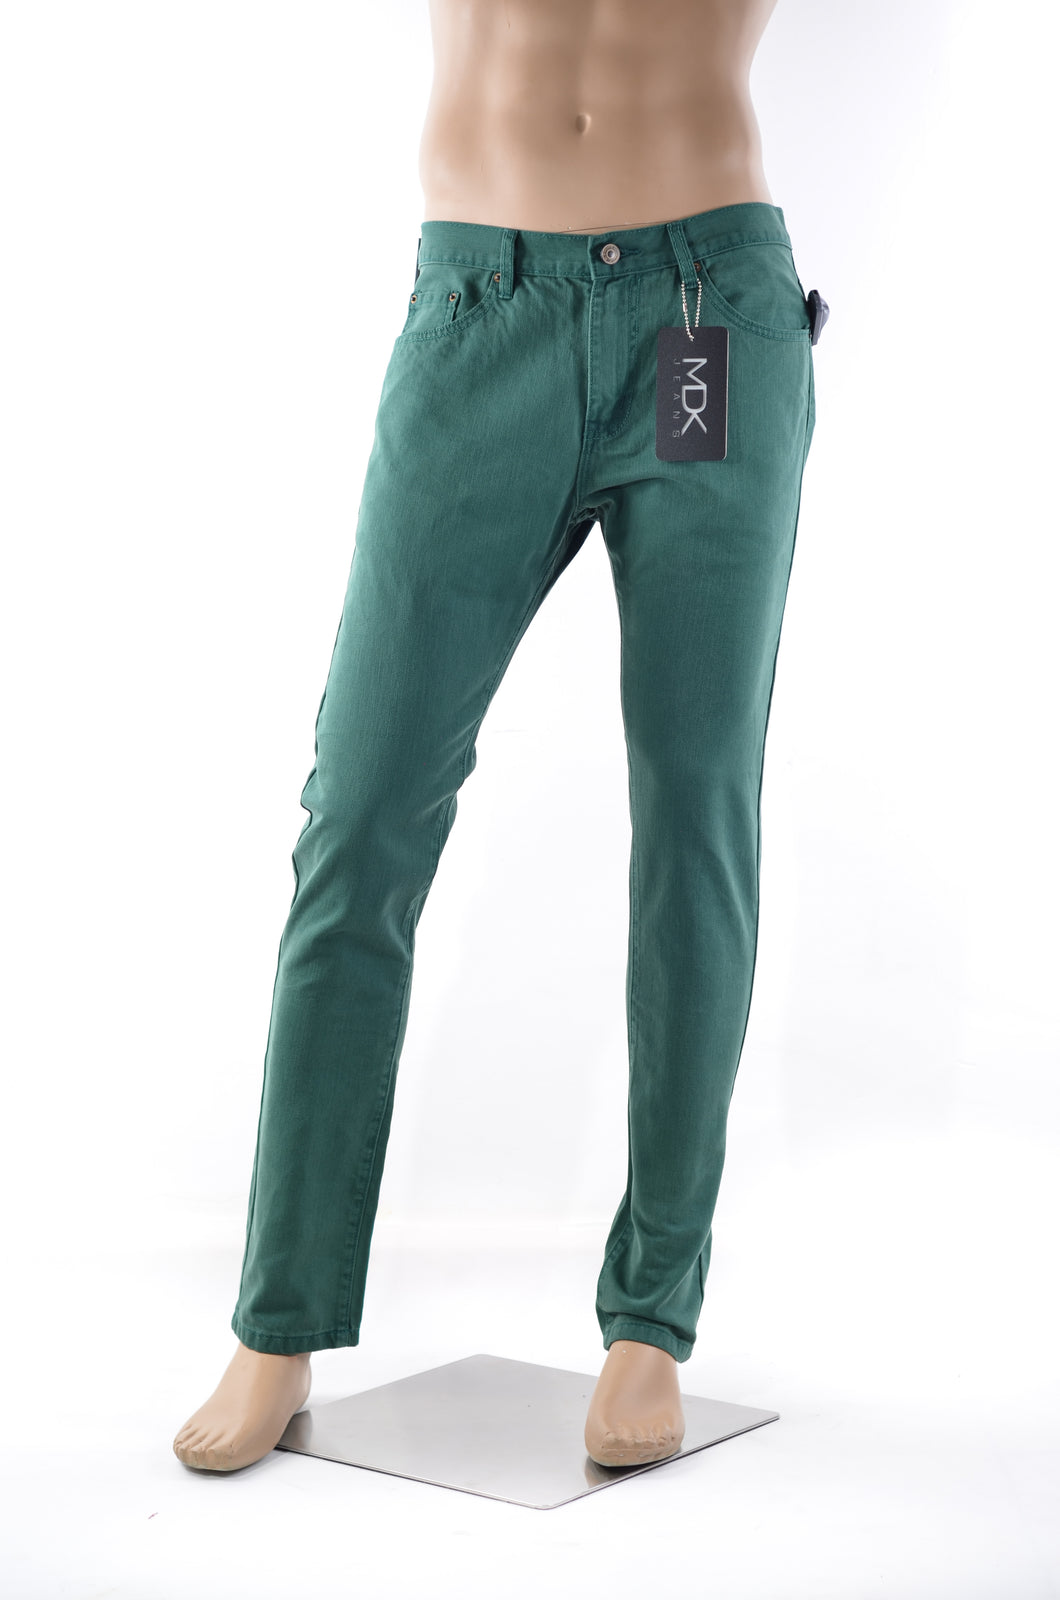 Dyed Denim (Green)